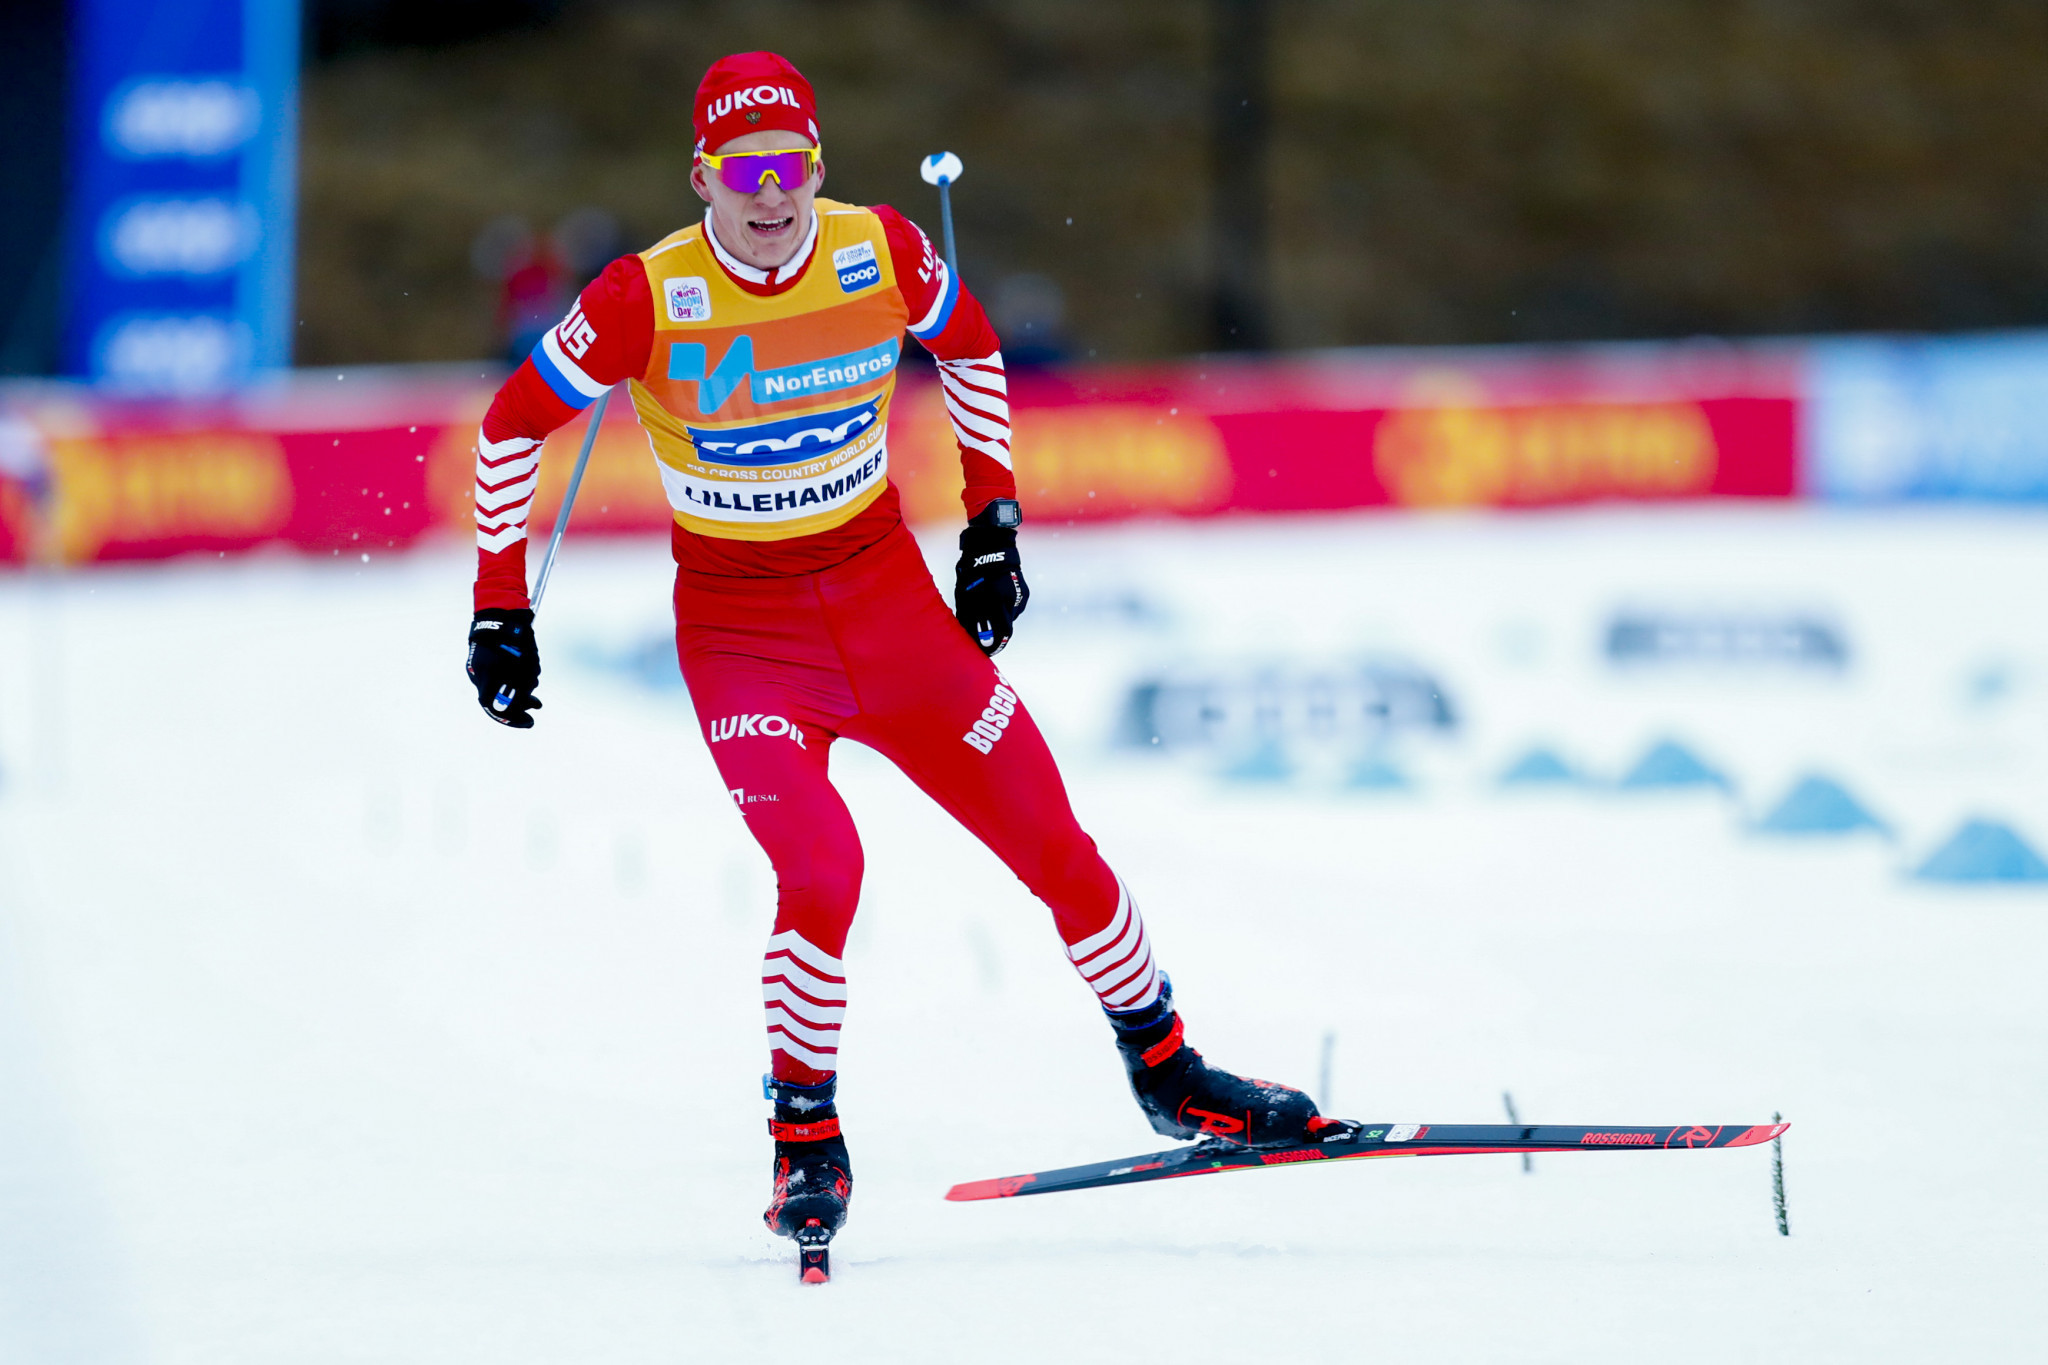 Davos offers sprinters chance of success as FIS Cross-Country World Cup continues